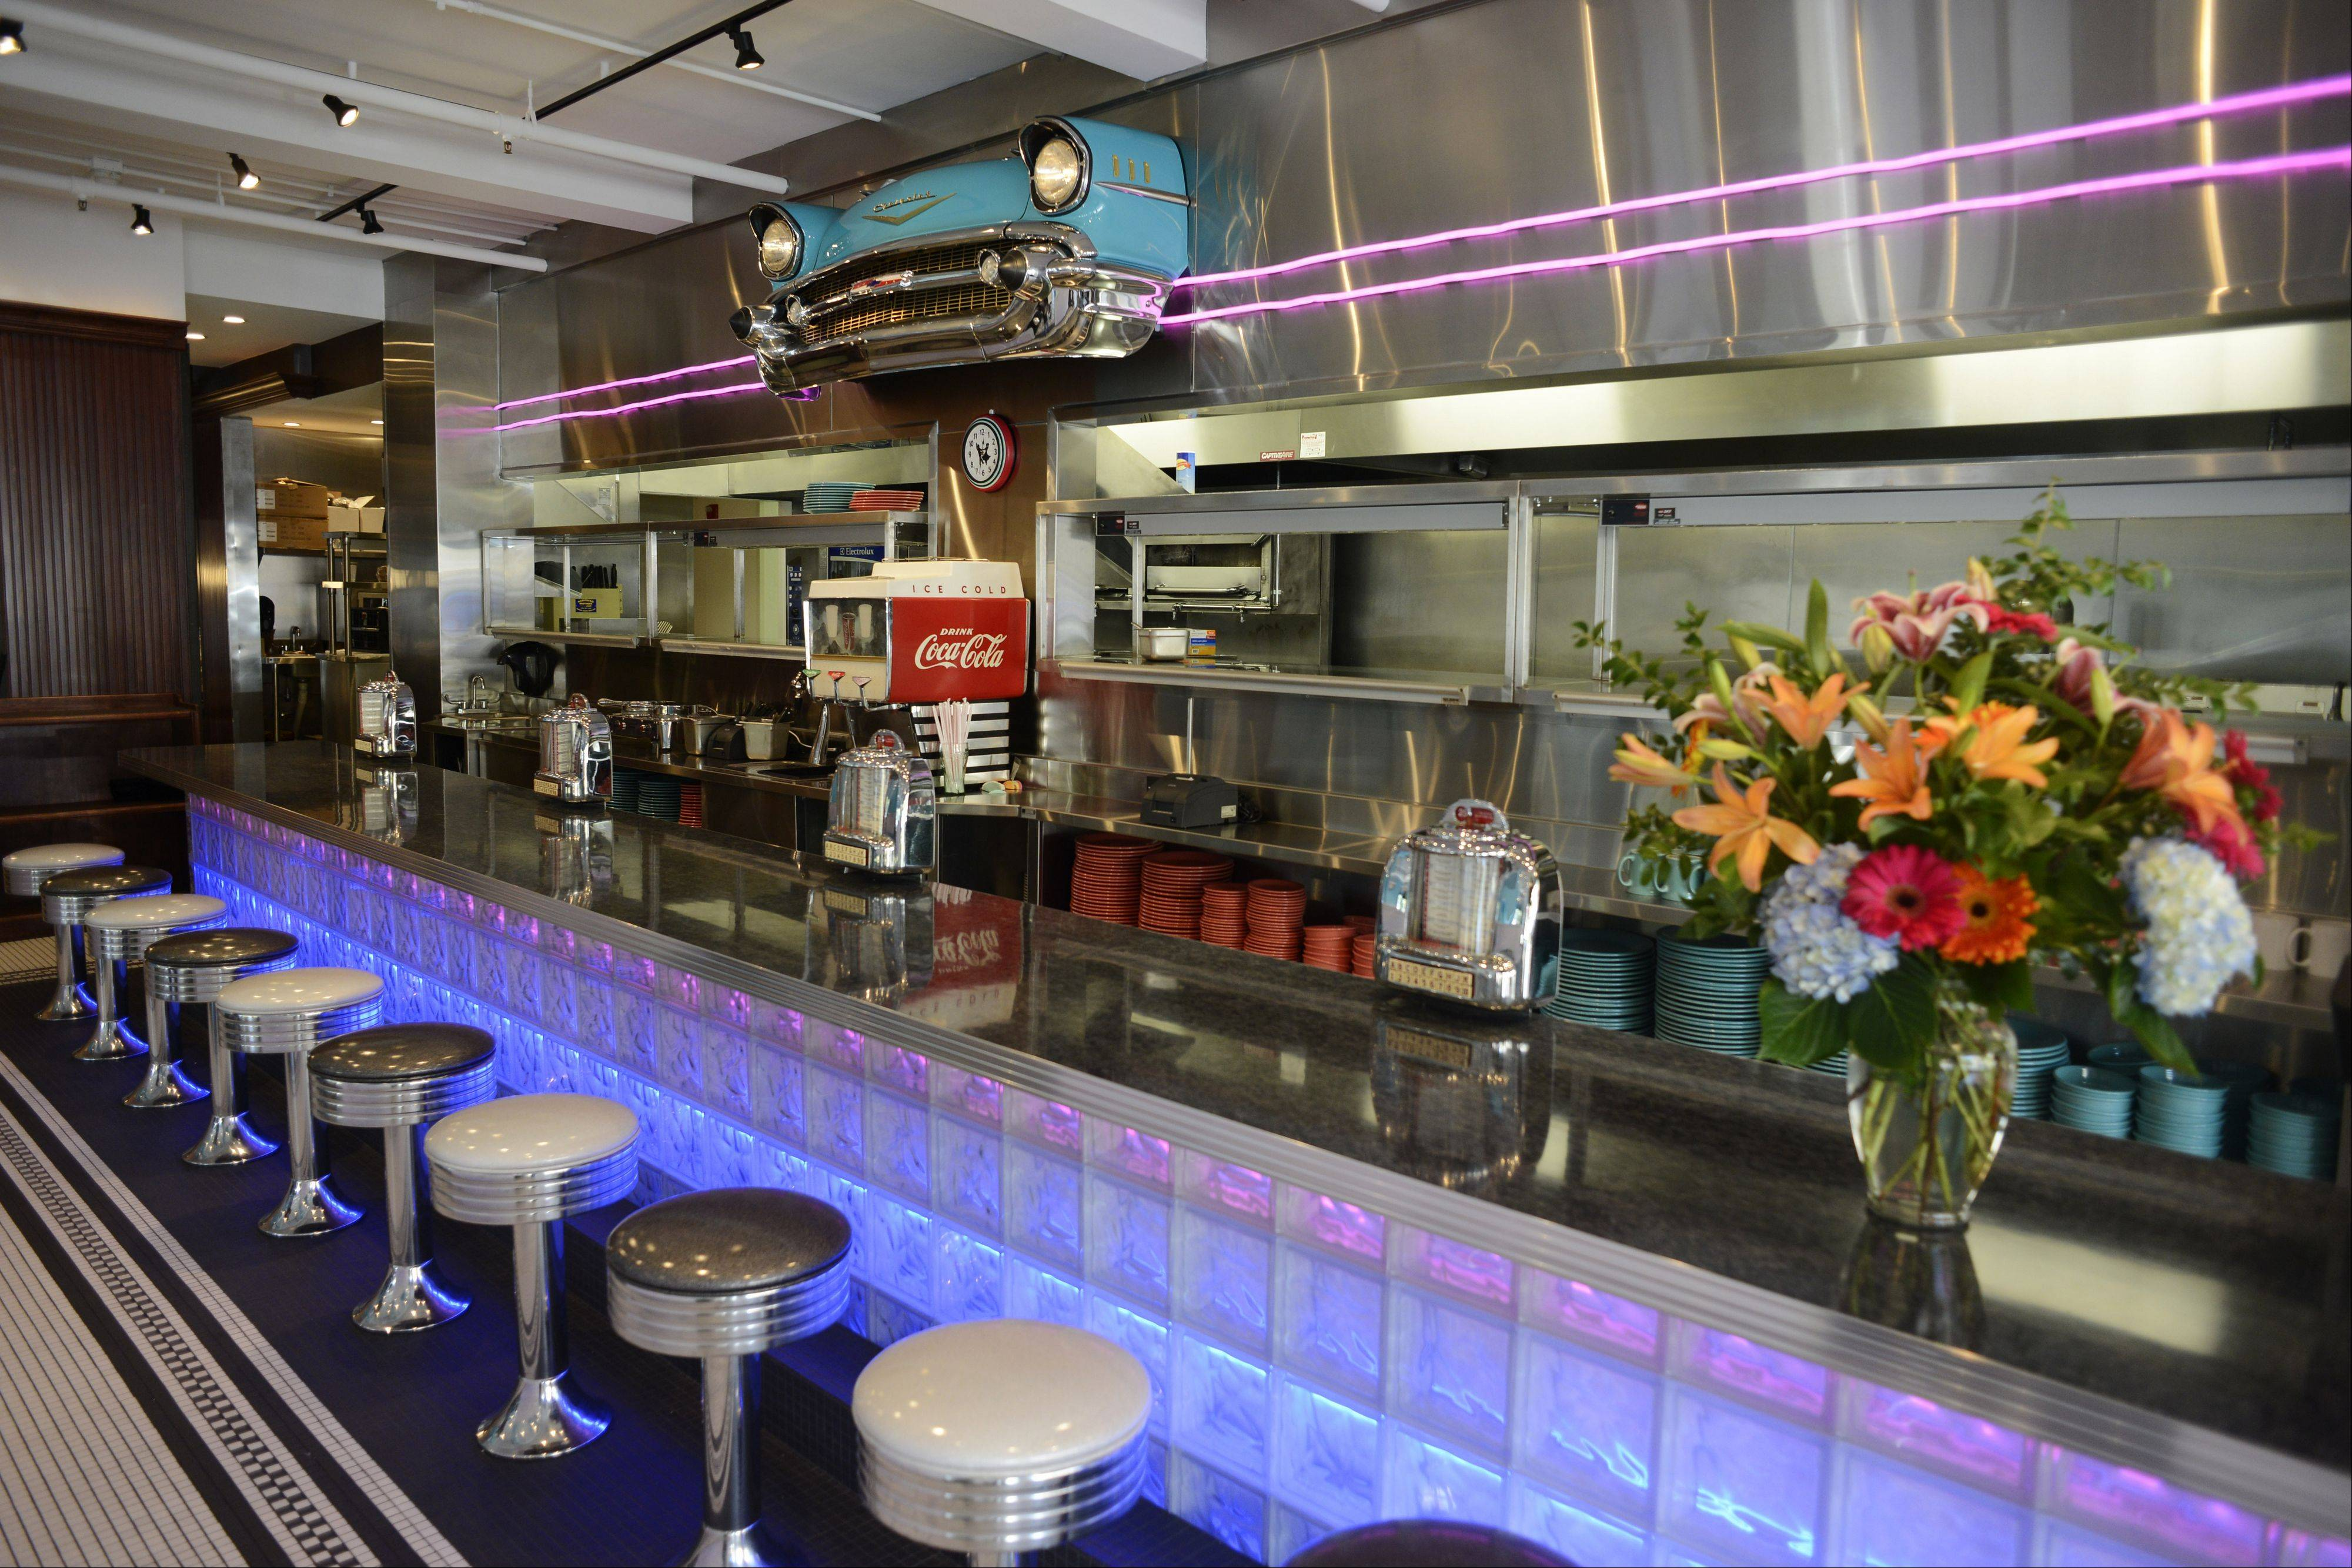 Circa 57 restaurant in downtown Arlington Heights opened recently.